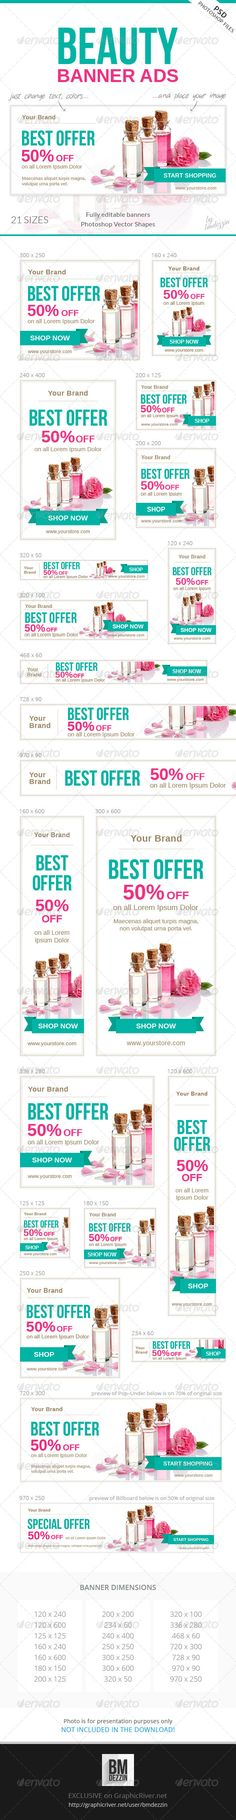 Beauty Banner Ads - Banners & Ads Web Template PSD. Download here: http://graphicriver.net/item/beauty-banner-ads/7675465?s_rank=38&ref=yinkira